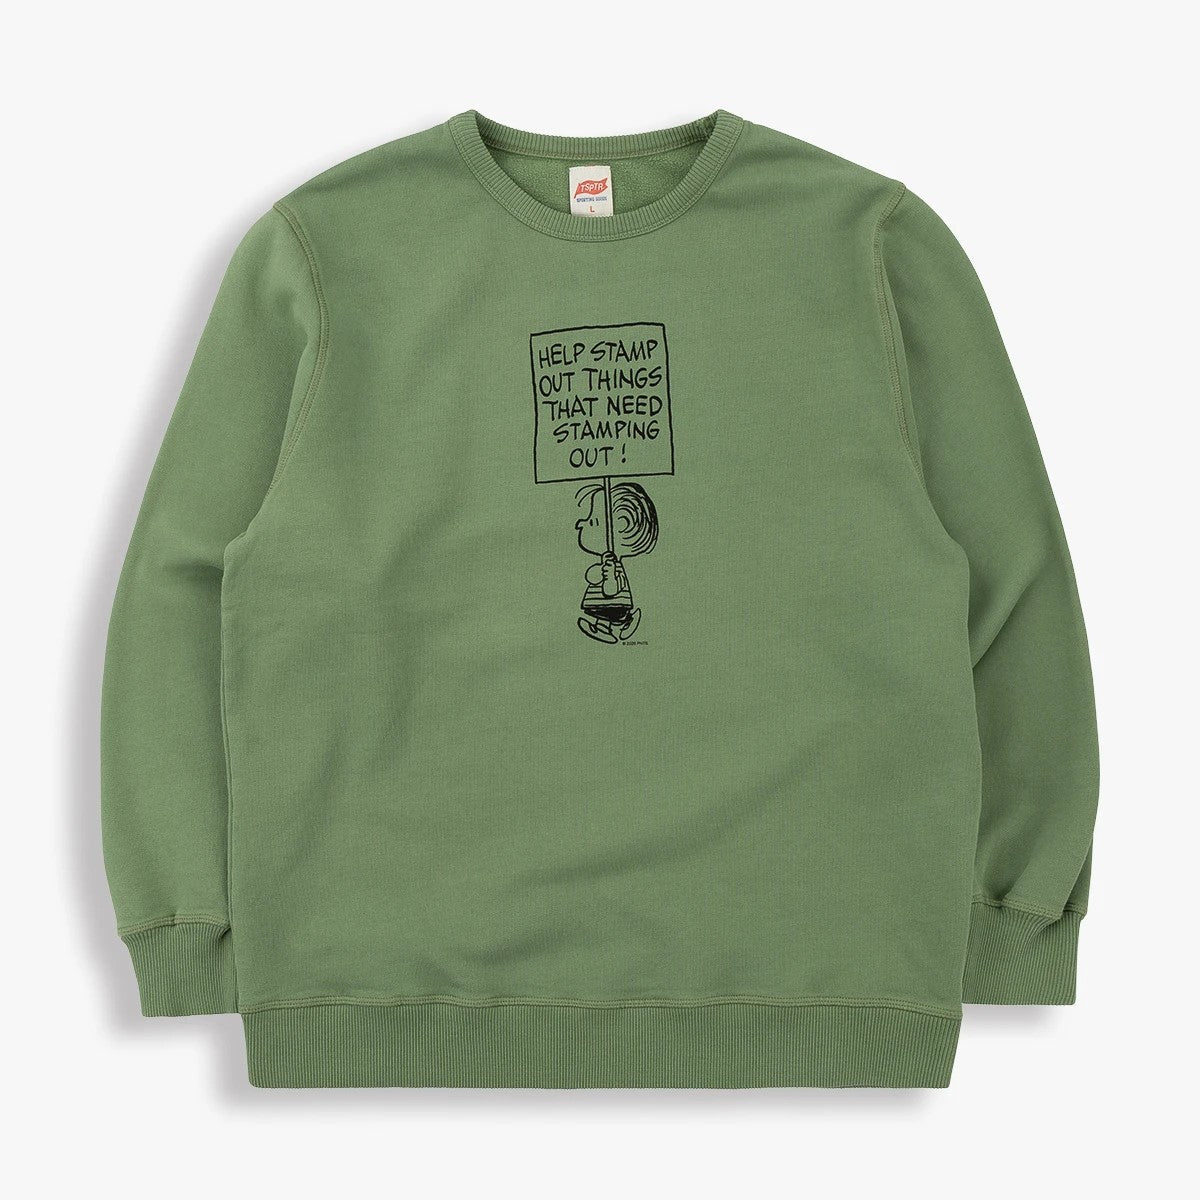 Stamp It Out Sweatshirt in Olive